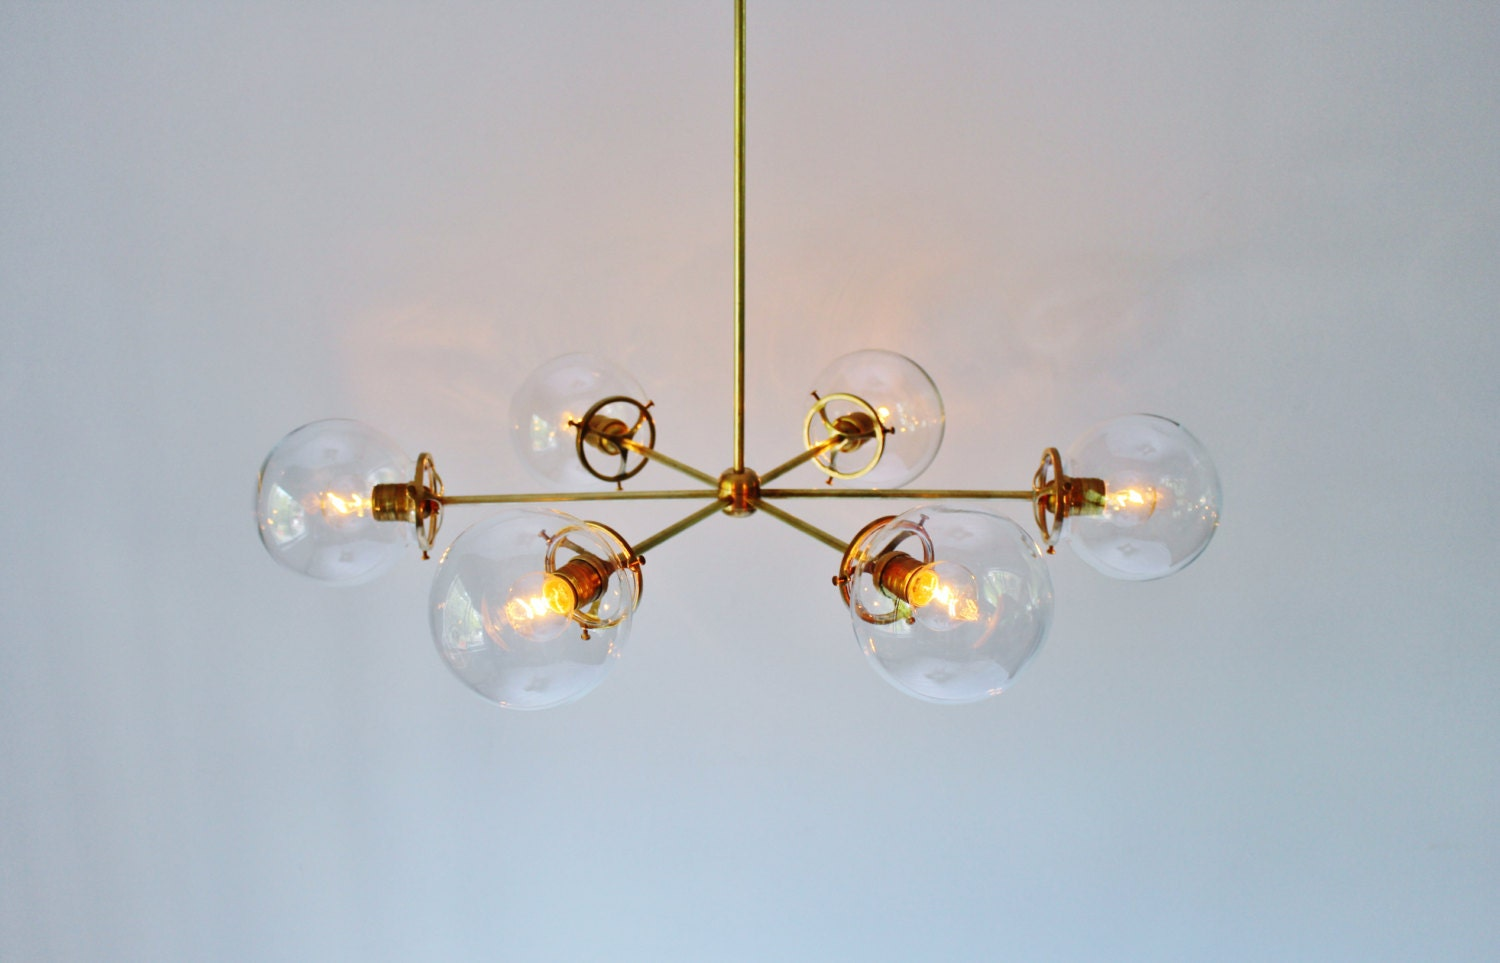 Brass globe chandelier 6 clear glass globe shades large zoom arubaitofo Image collections